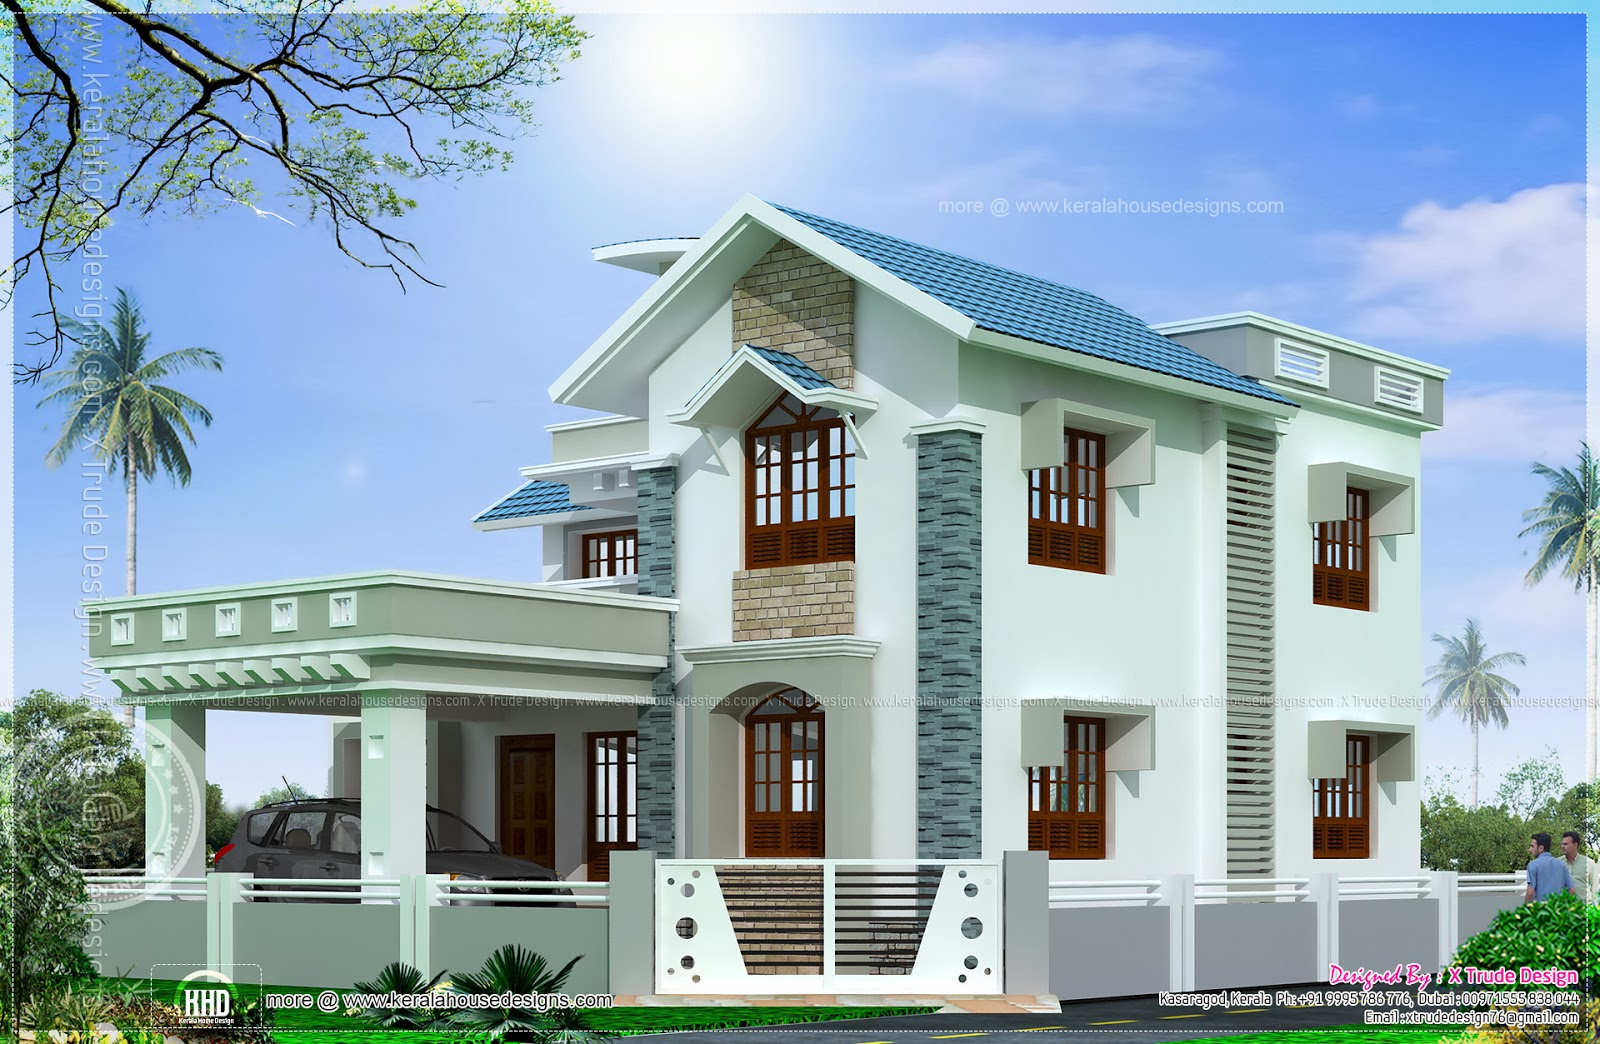 Sweet home beautiful square feet house elevation kerala for Beautiful farmhouse plans